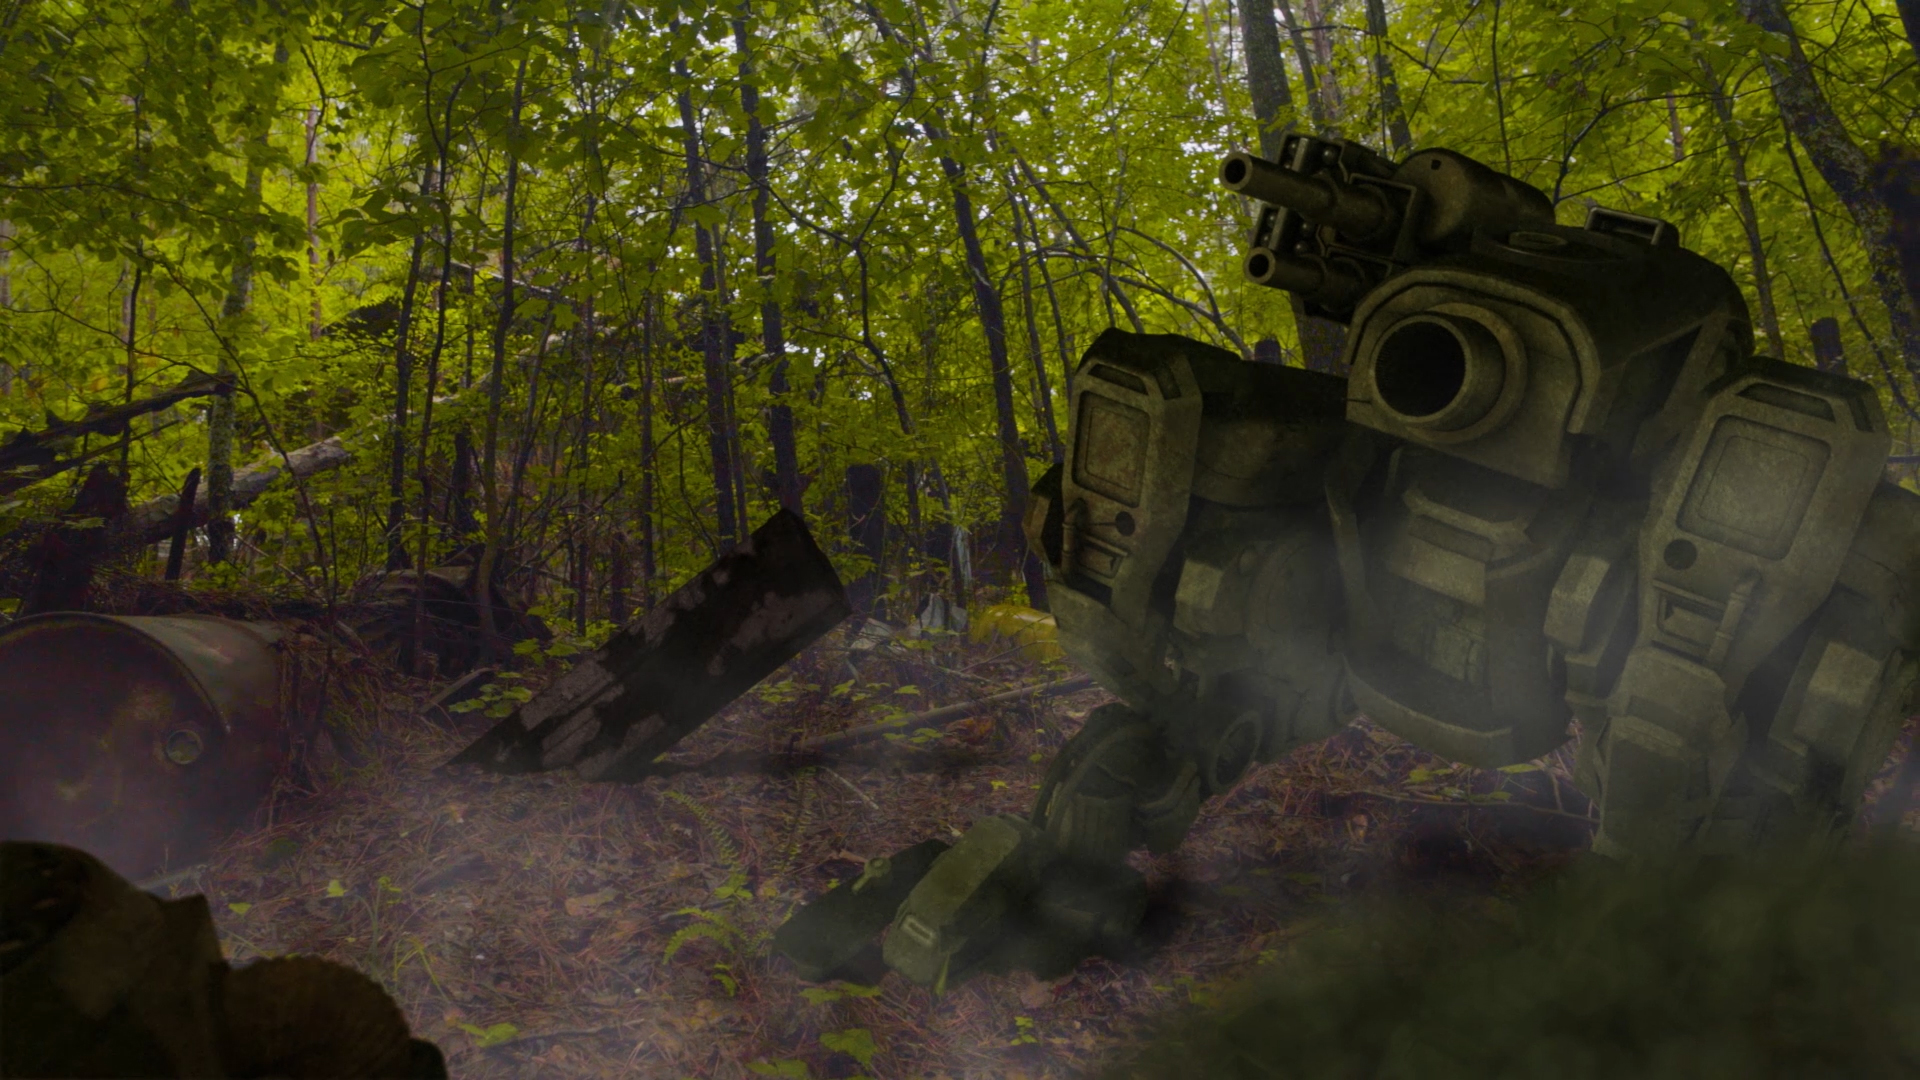 From the sci-fi short film Fringe Territory: Salvage Mission One. Broken down mechs and robots in the junkyard.